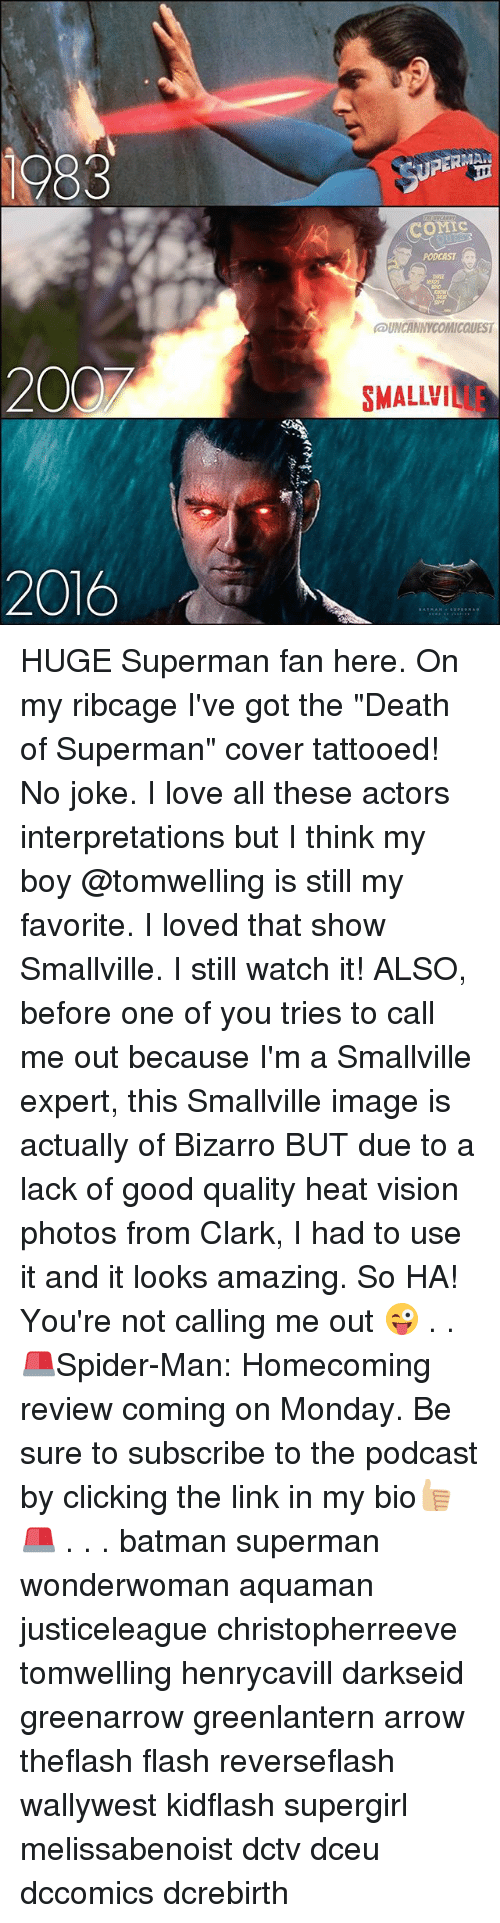 """Clarked: 1983  UPERM  COMC  PODCAST  021  UNCANNYCOMICQUEST  200  SMALLVILLE  2016 HUGE Superman fan here. On my ribcage I've got the """"Death of Superman"""" cover tattooed! No joke. I love all these actors interpretations but I think my boy @tomwelling is still my favorite. I loved that show Smallville. I still watch it! ALSO, before one of you tries to call me out because I'm a Smallville expert, this Smallville image is actually of Bizarro BUT due to a lack of good quality heat vision photos from Clark, I had to use it and it looks amazing. So HA! You're not calling me out 😜 . . 🚨Spider-Man: Homecoming review coming on Monday. Be sure to subscribe to the podcast by clicking the link in my bio👍🏼🚨 . . . batman superman wonderwoman aquaman justiceleague christopherreeve tomwelling henrycavill darkseid greenarrow greenlantern arrow theflash flash reverseflash wallywest kidflash supergirl melissabenoist dctv dceu dccomics dcrebirth"""